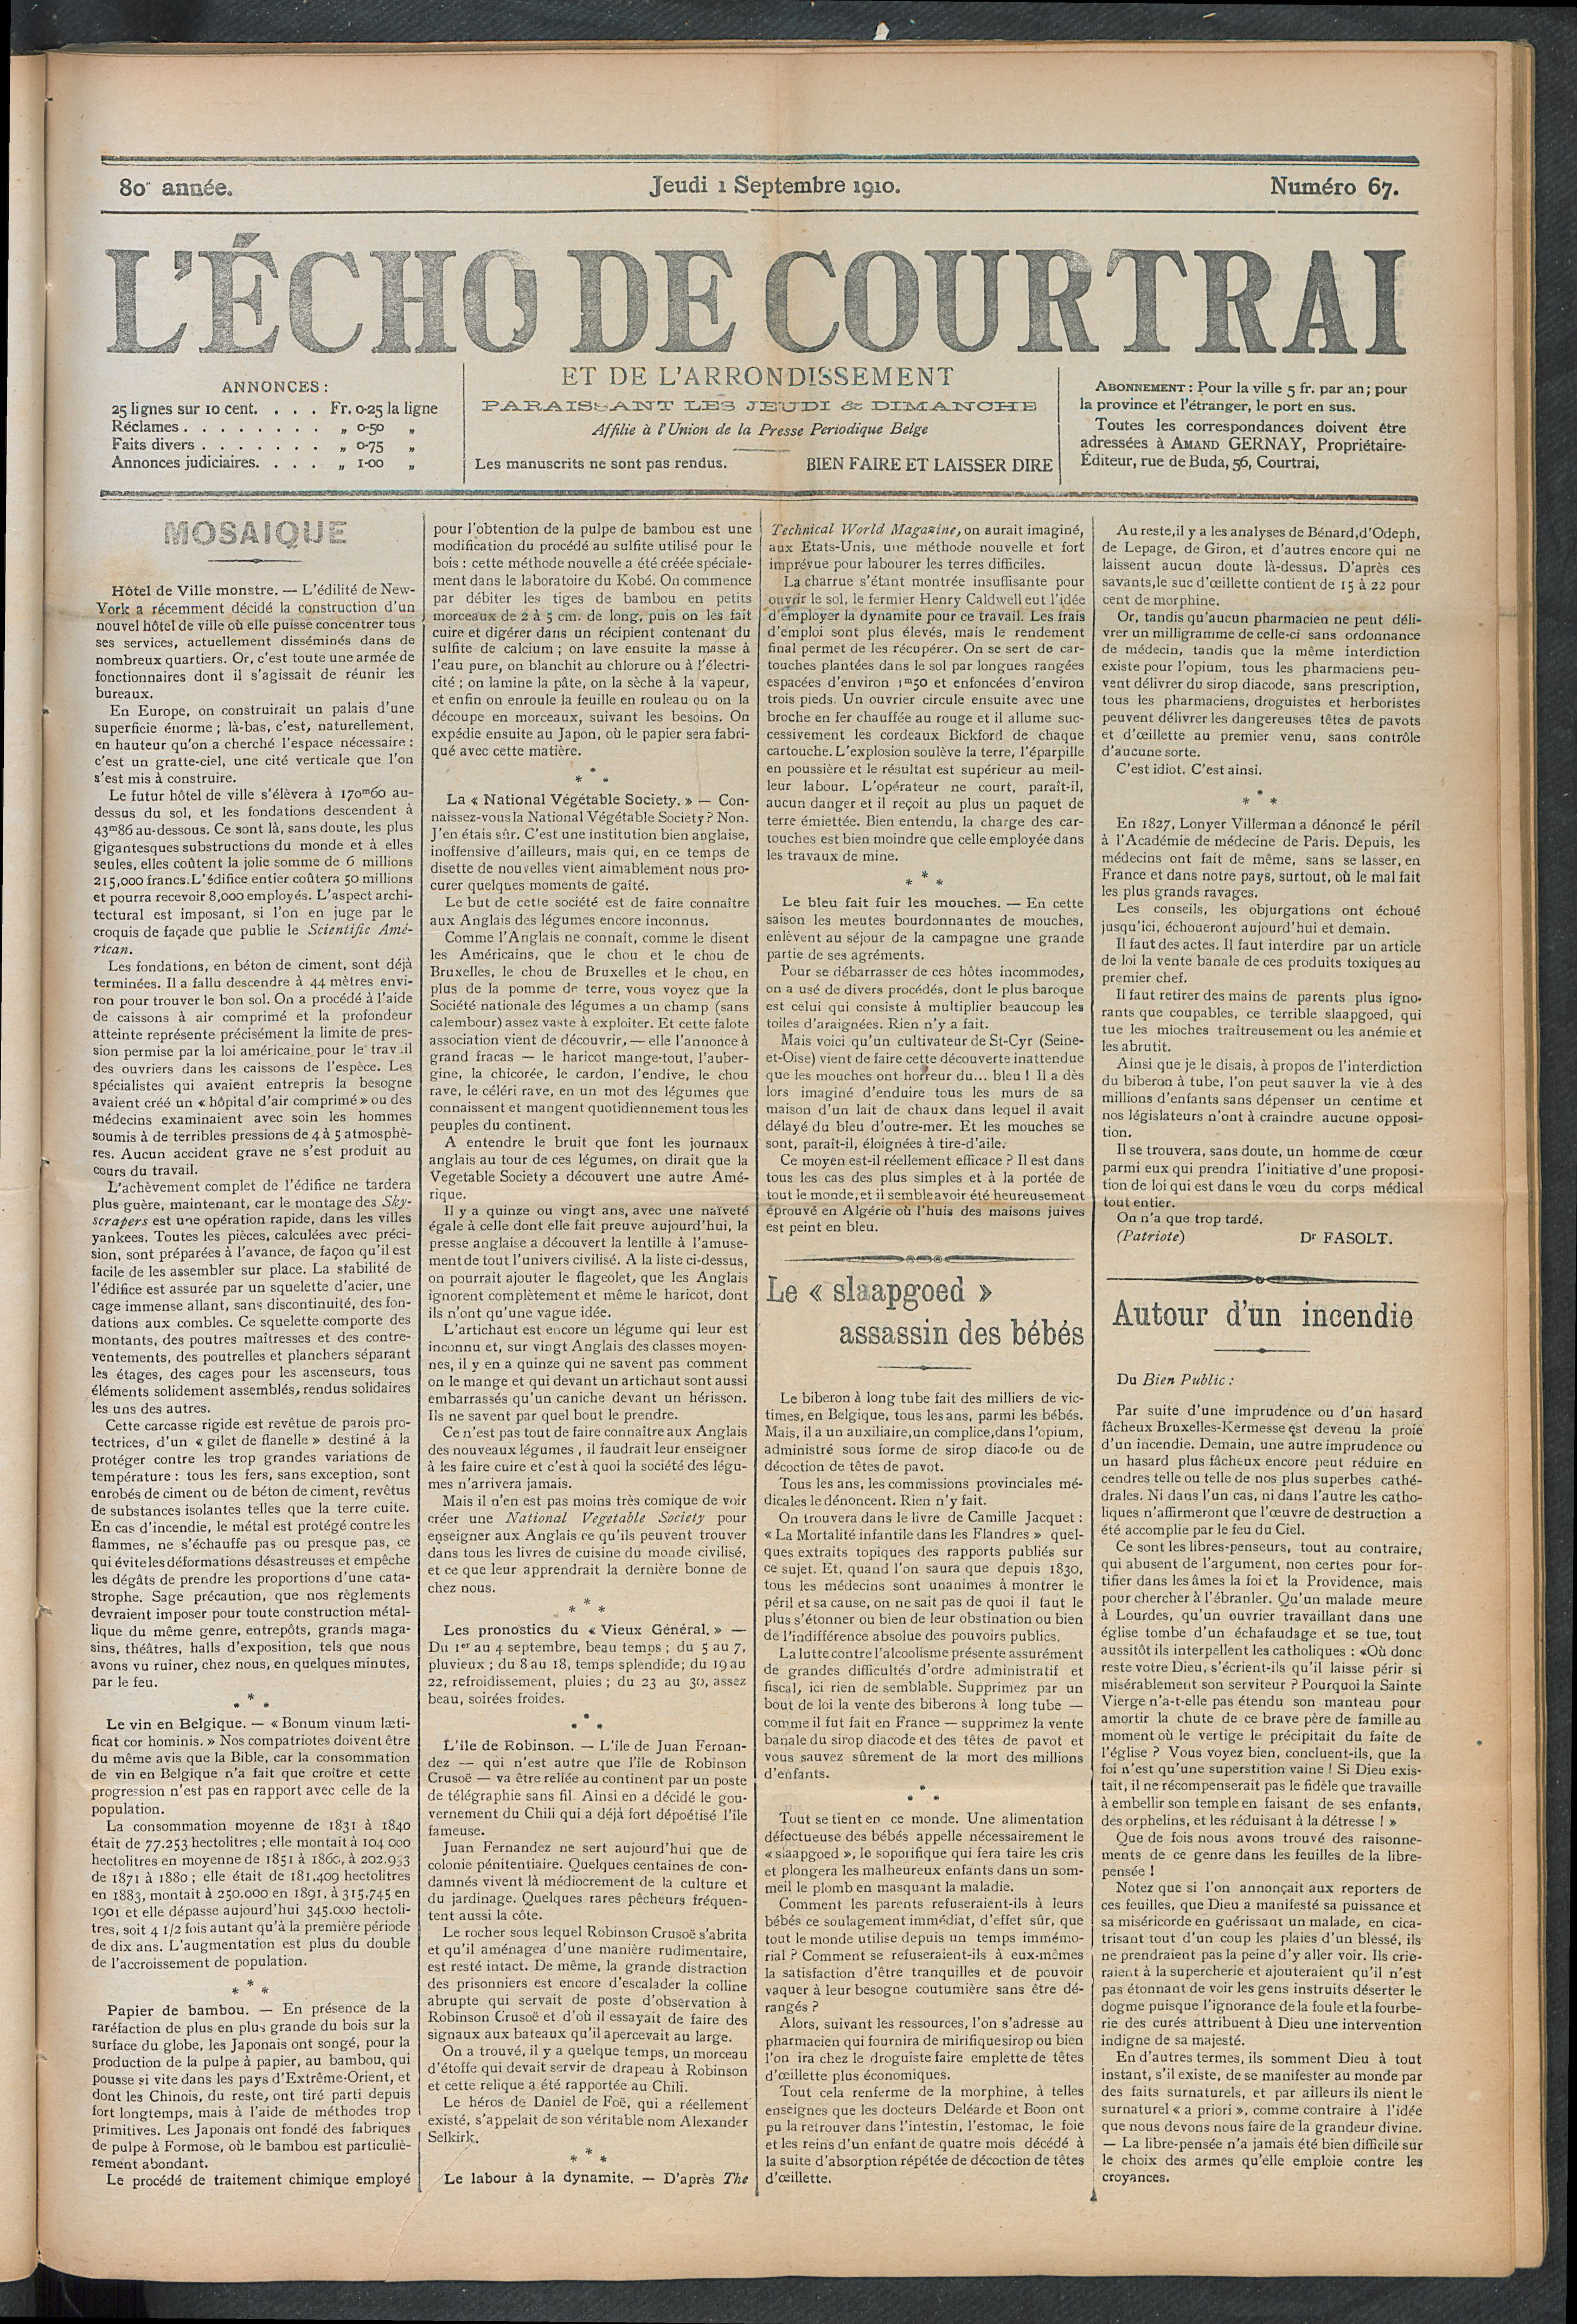 L'echo De Courtrai 1910-09-01 p1